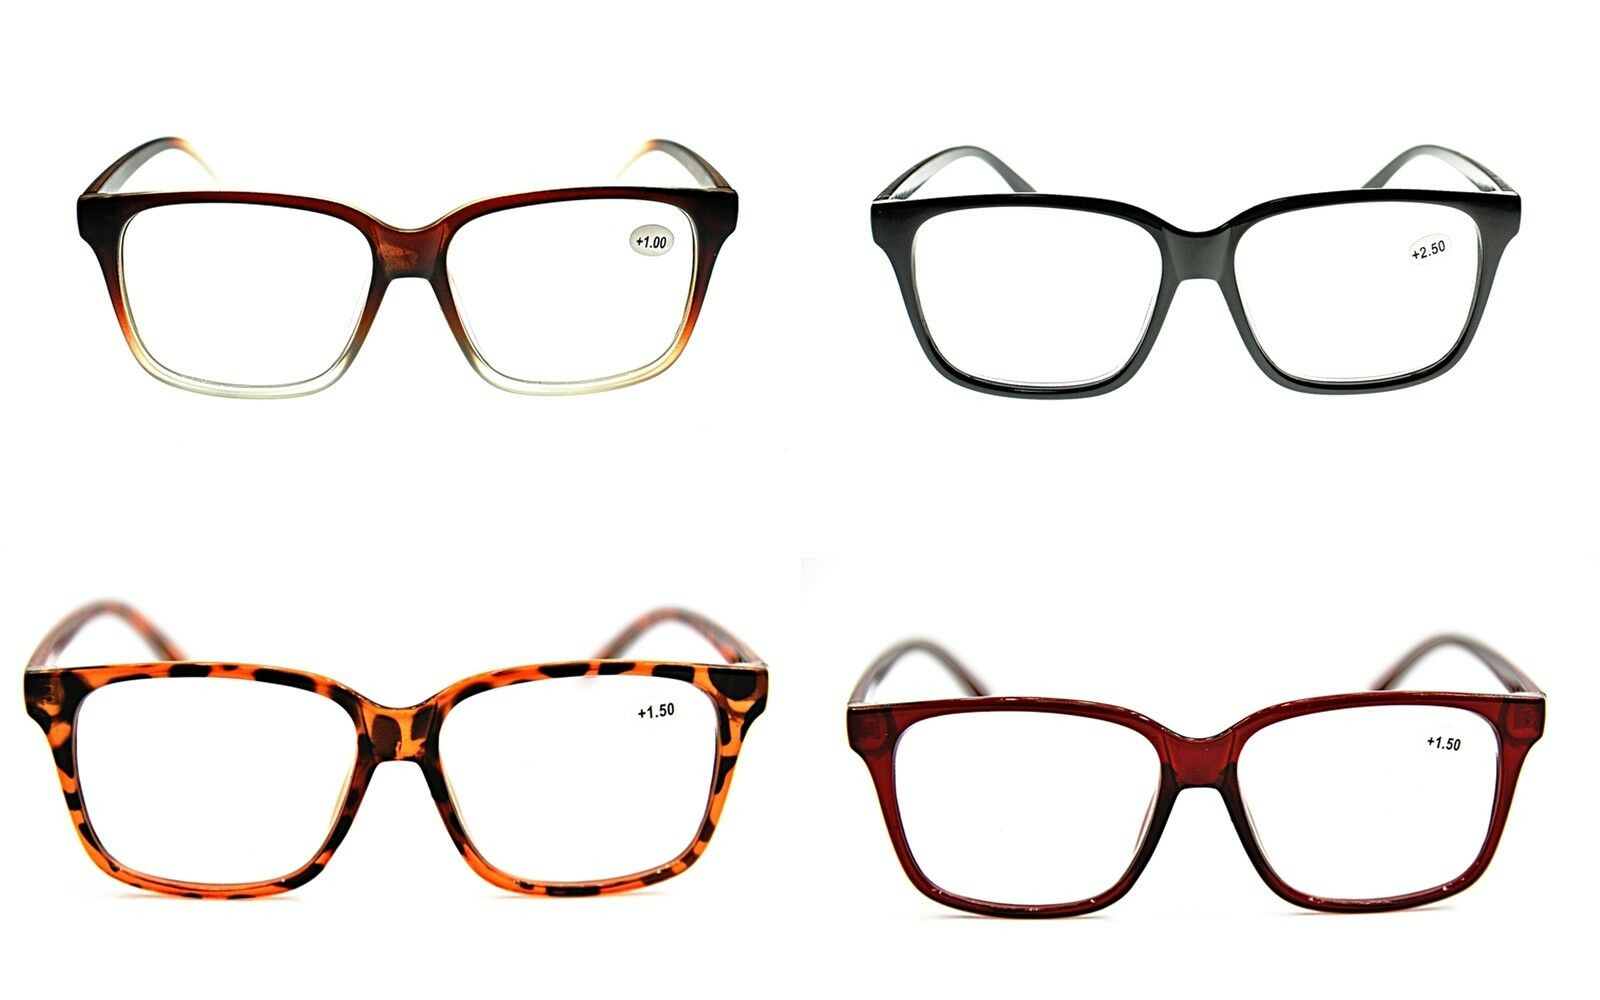 97f23d52f9 Details about Stylish Geek Nerd Big Frame Fashion Metal Hinged Reading  Glasses 4 Colours TN44